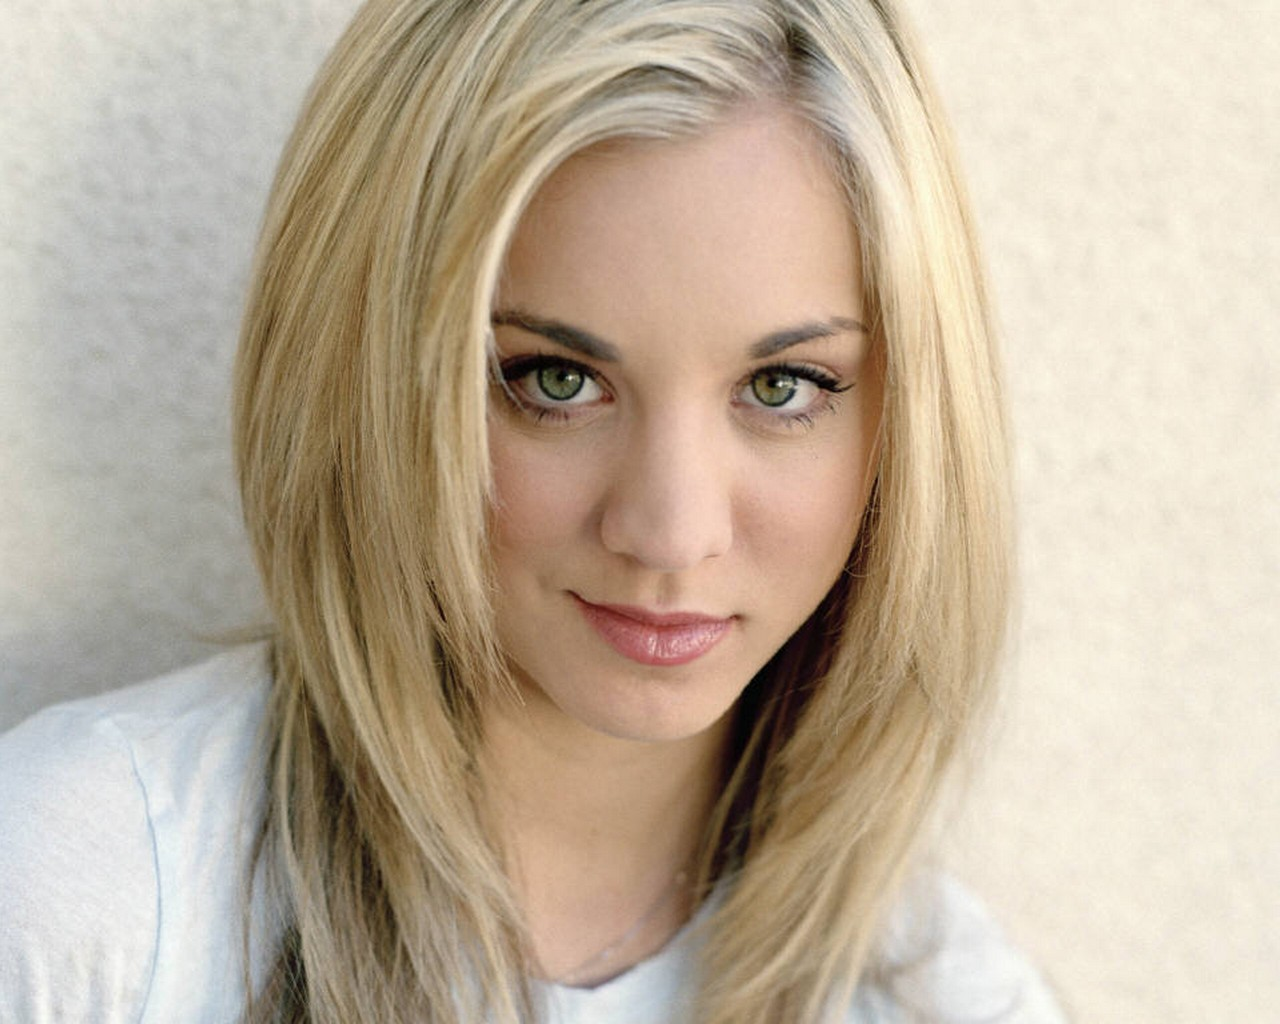 actress celebrity blonde - photo #21